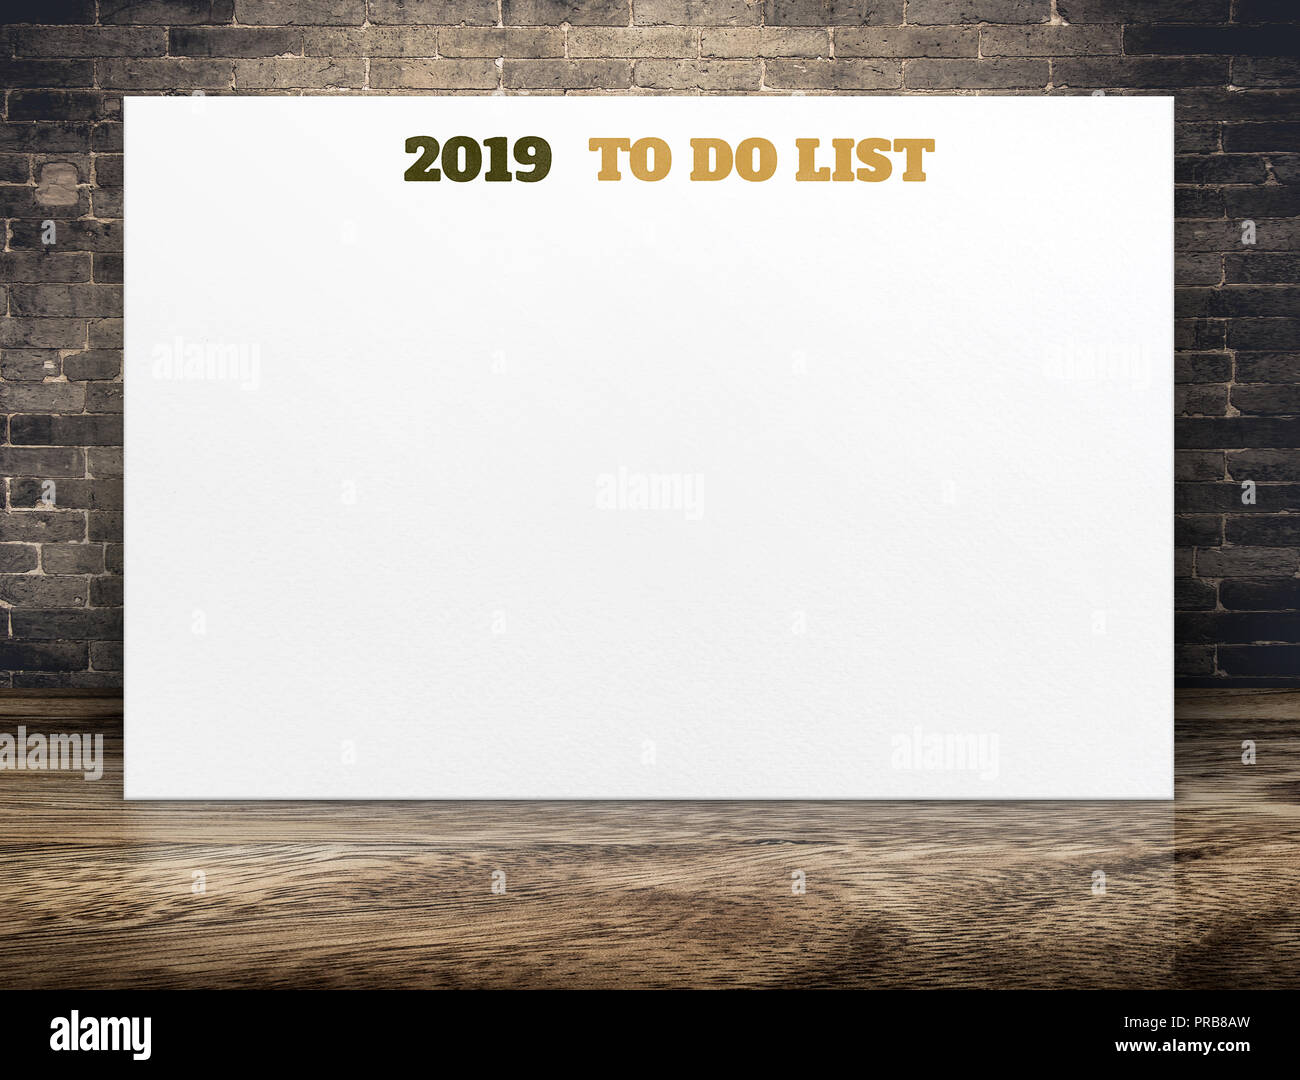 2019 new year to do list on white paper poster on brown wood floor